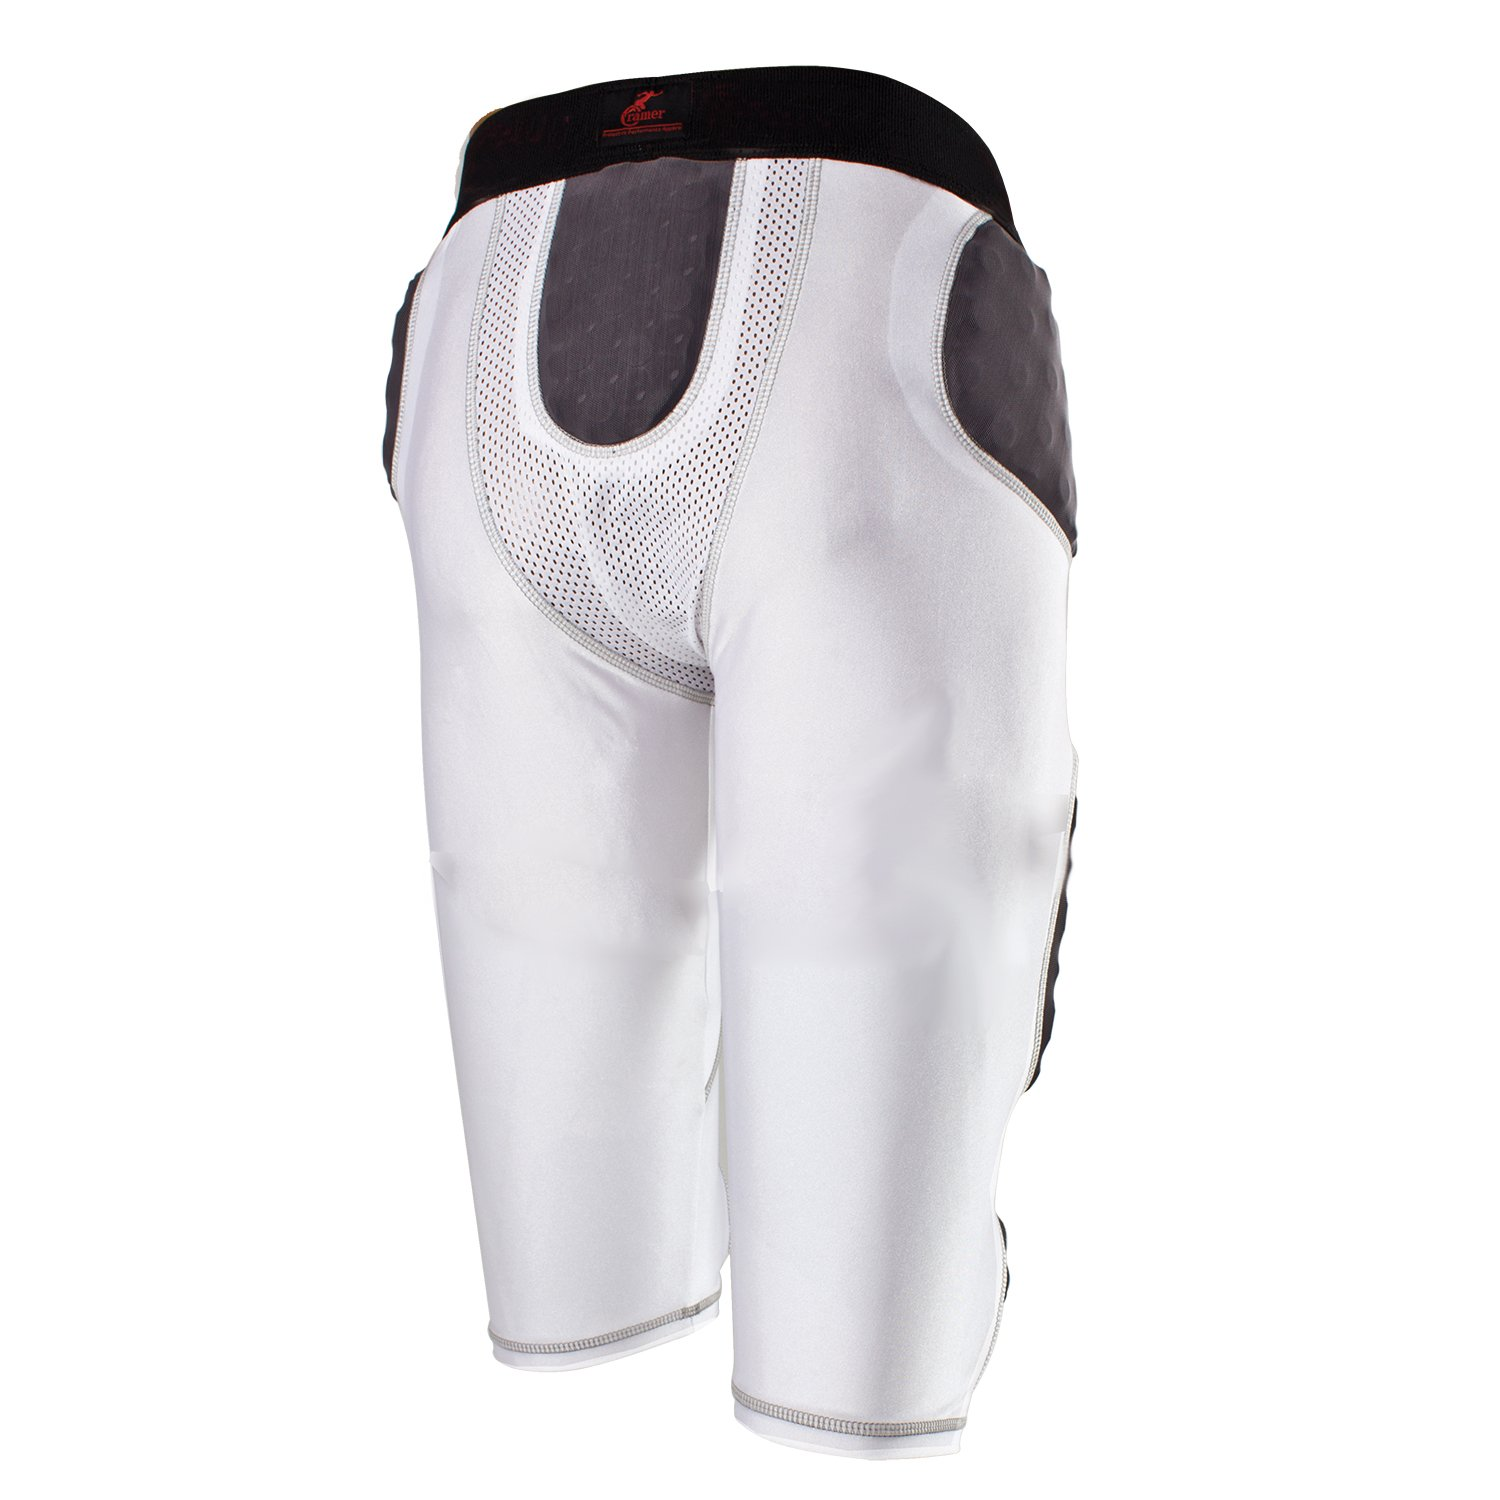 Cramer Lightning 7 Pad Football Girdle With Integrated Hip, Tailbone and Thigh Pads, Anti-Bacterial and Moisture-Wicking Fabric, Great Protection Without Impeding Athletic Performance, White, Medium by Cramer (Image #3)